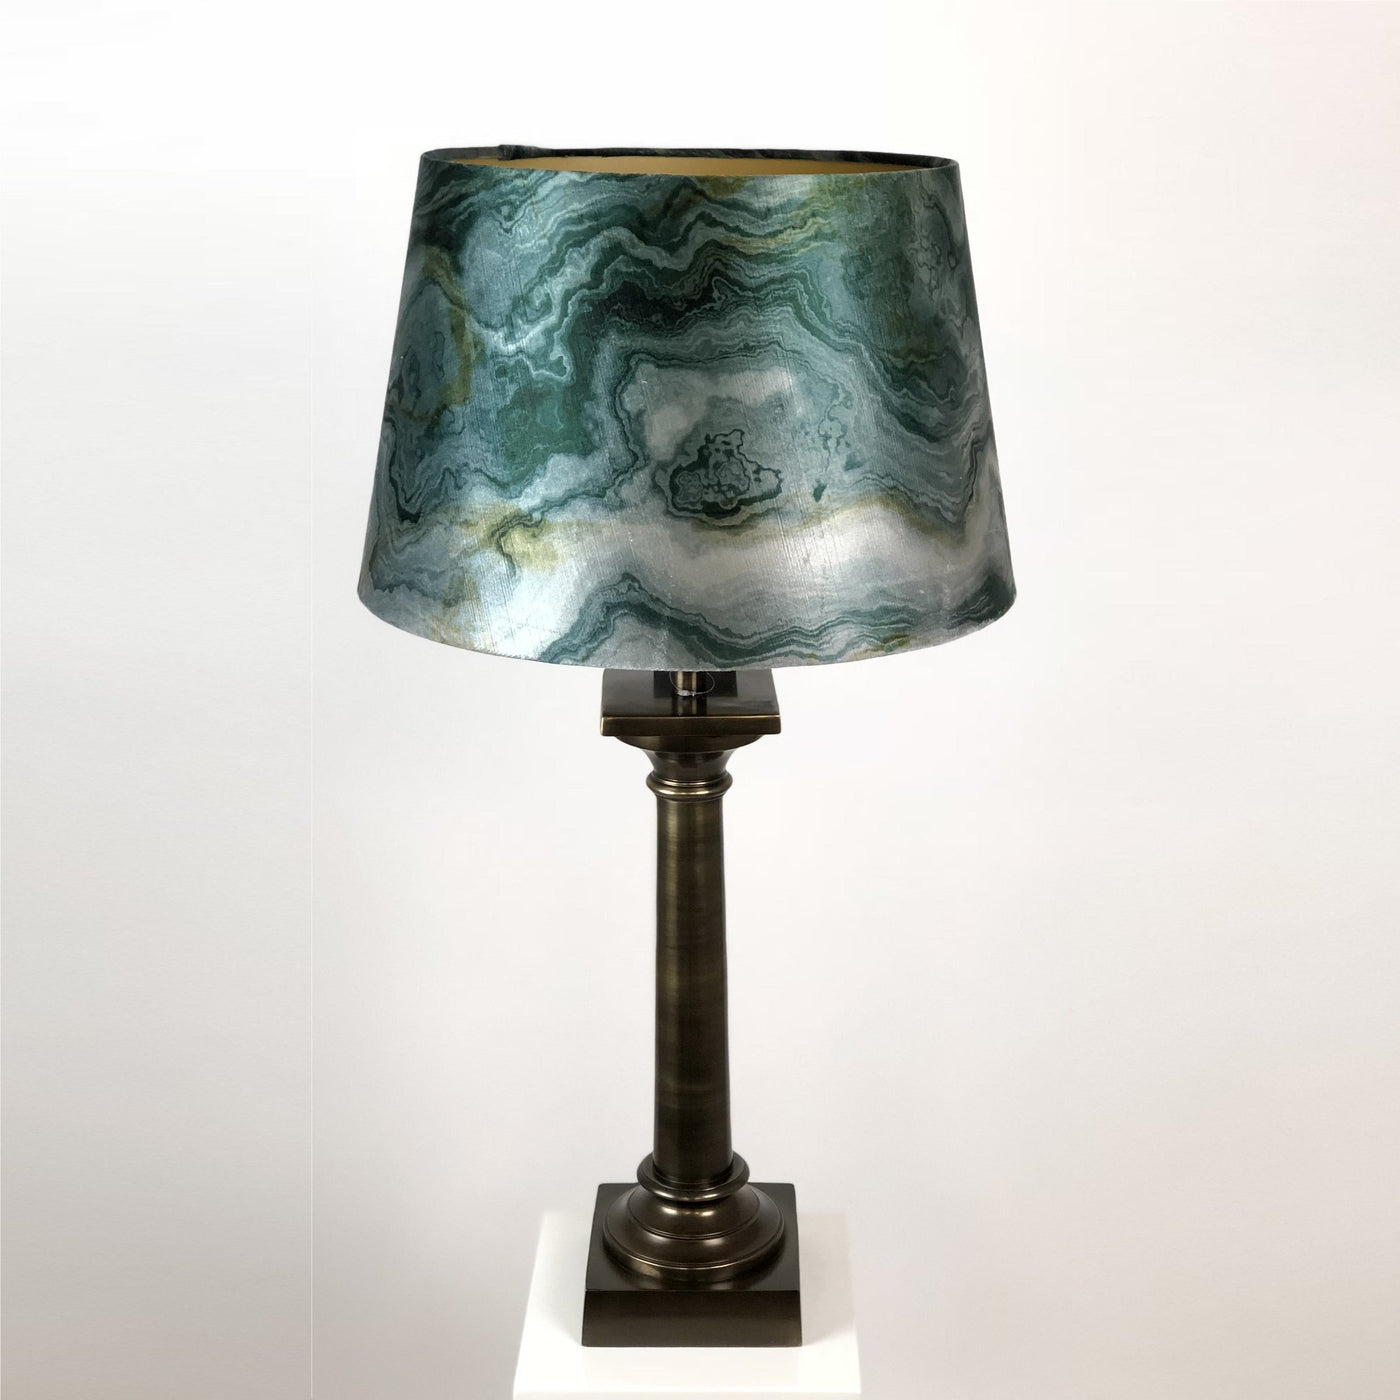 Doric Table Lamp Antique Brass with Marble Emerald Shade